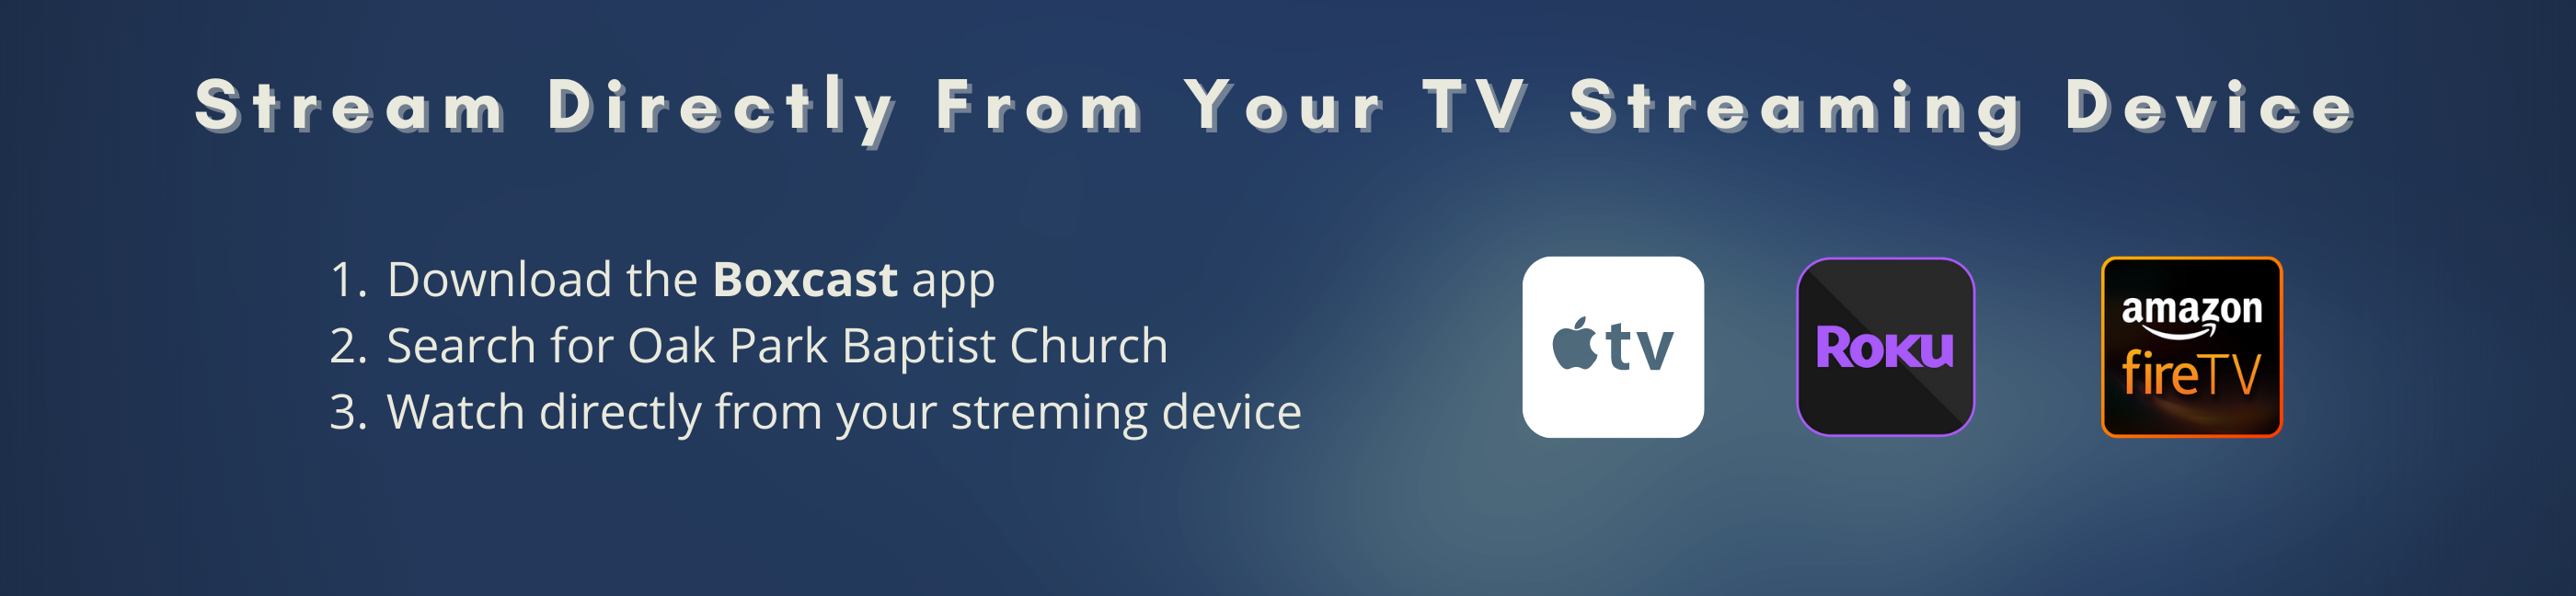 Stream Directly From Your TV Streaming Device